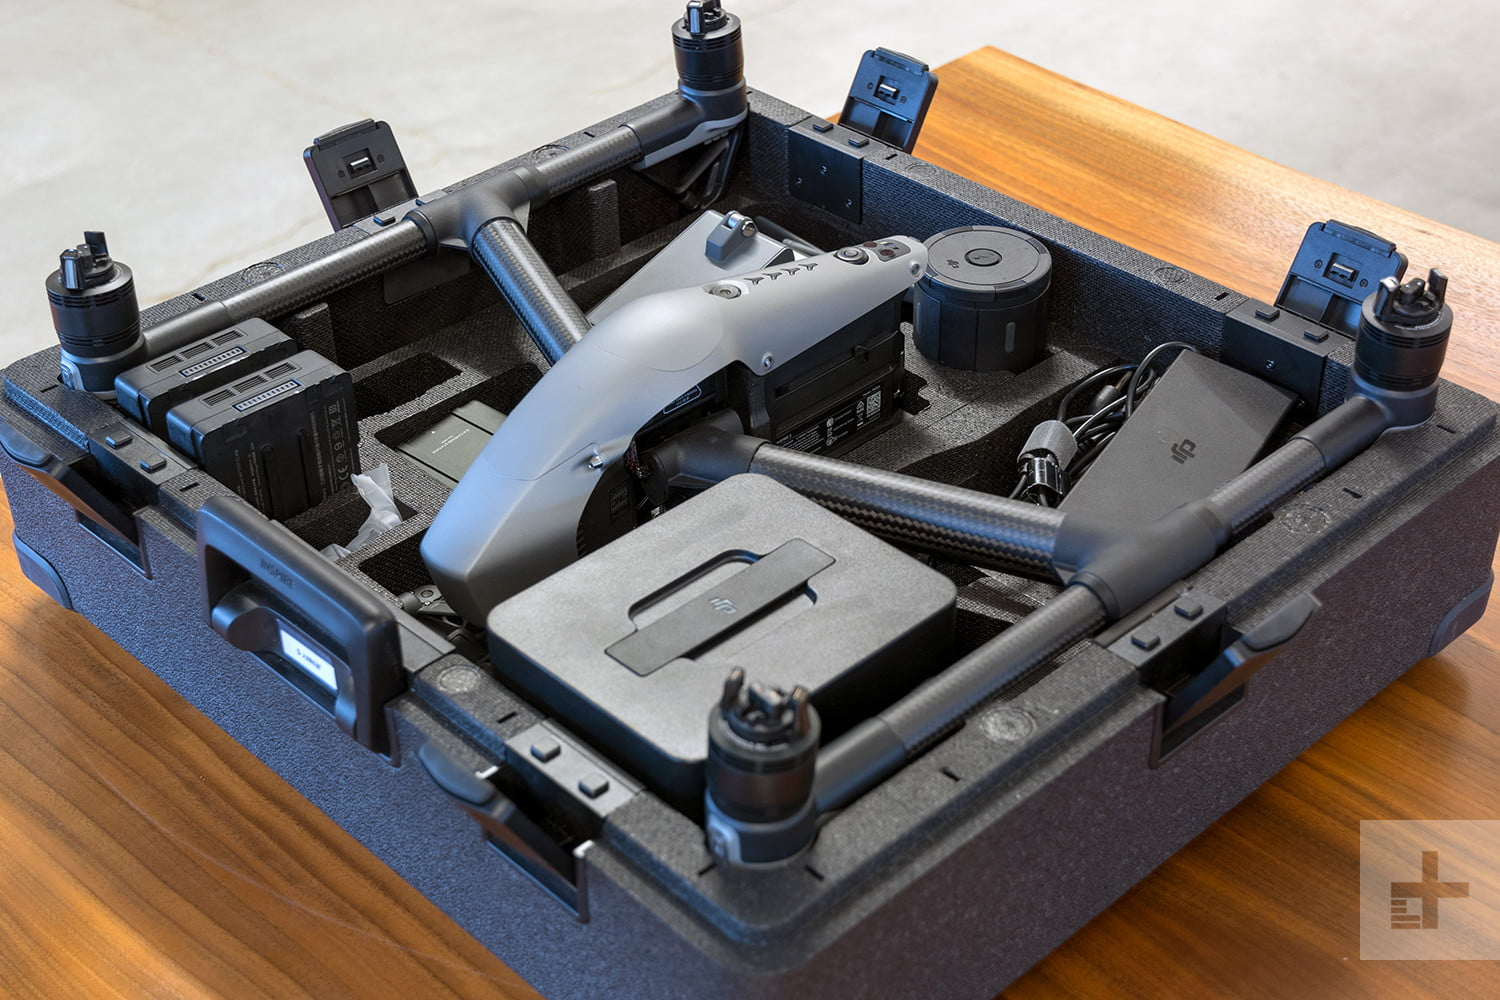 Build Quality Is As Weve Come To Expect From DJI Off The Charts Even For A Drone Inspire 2 Ridiculously Well Built